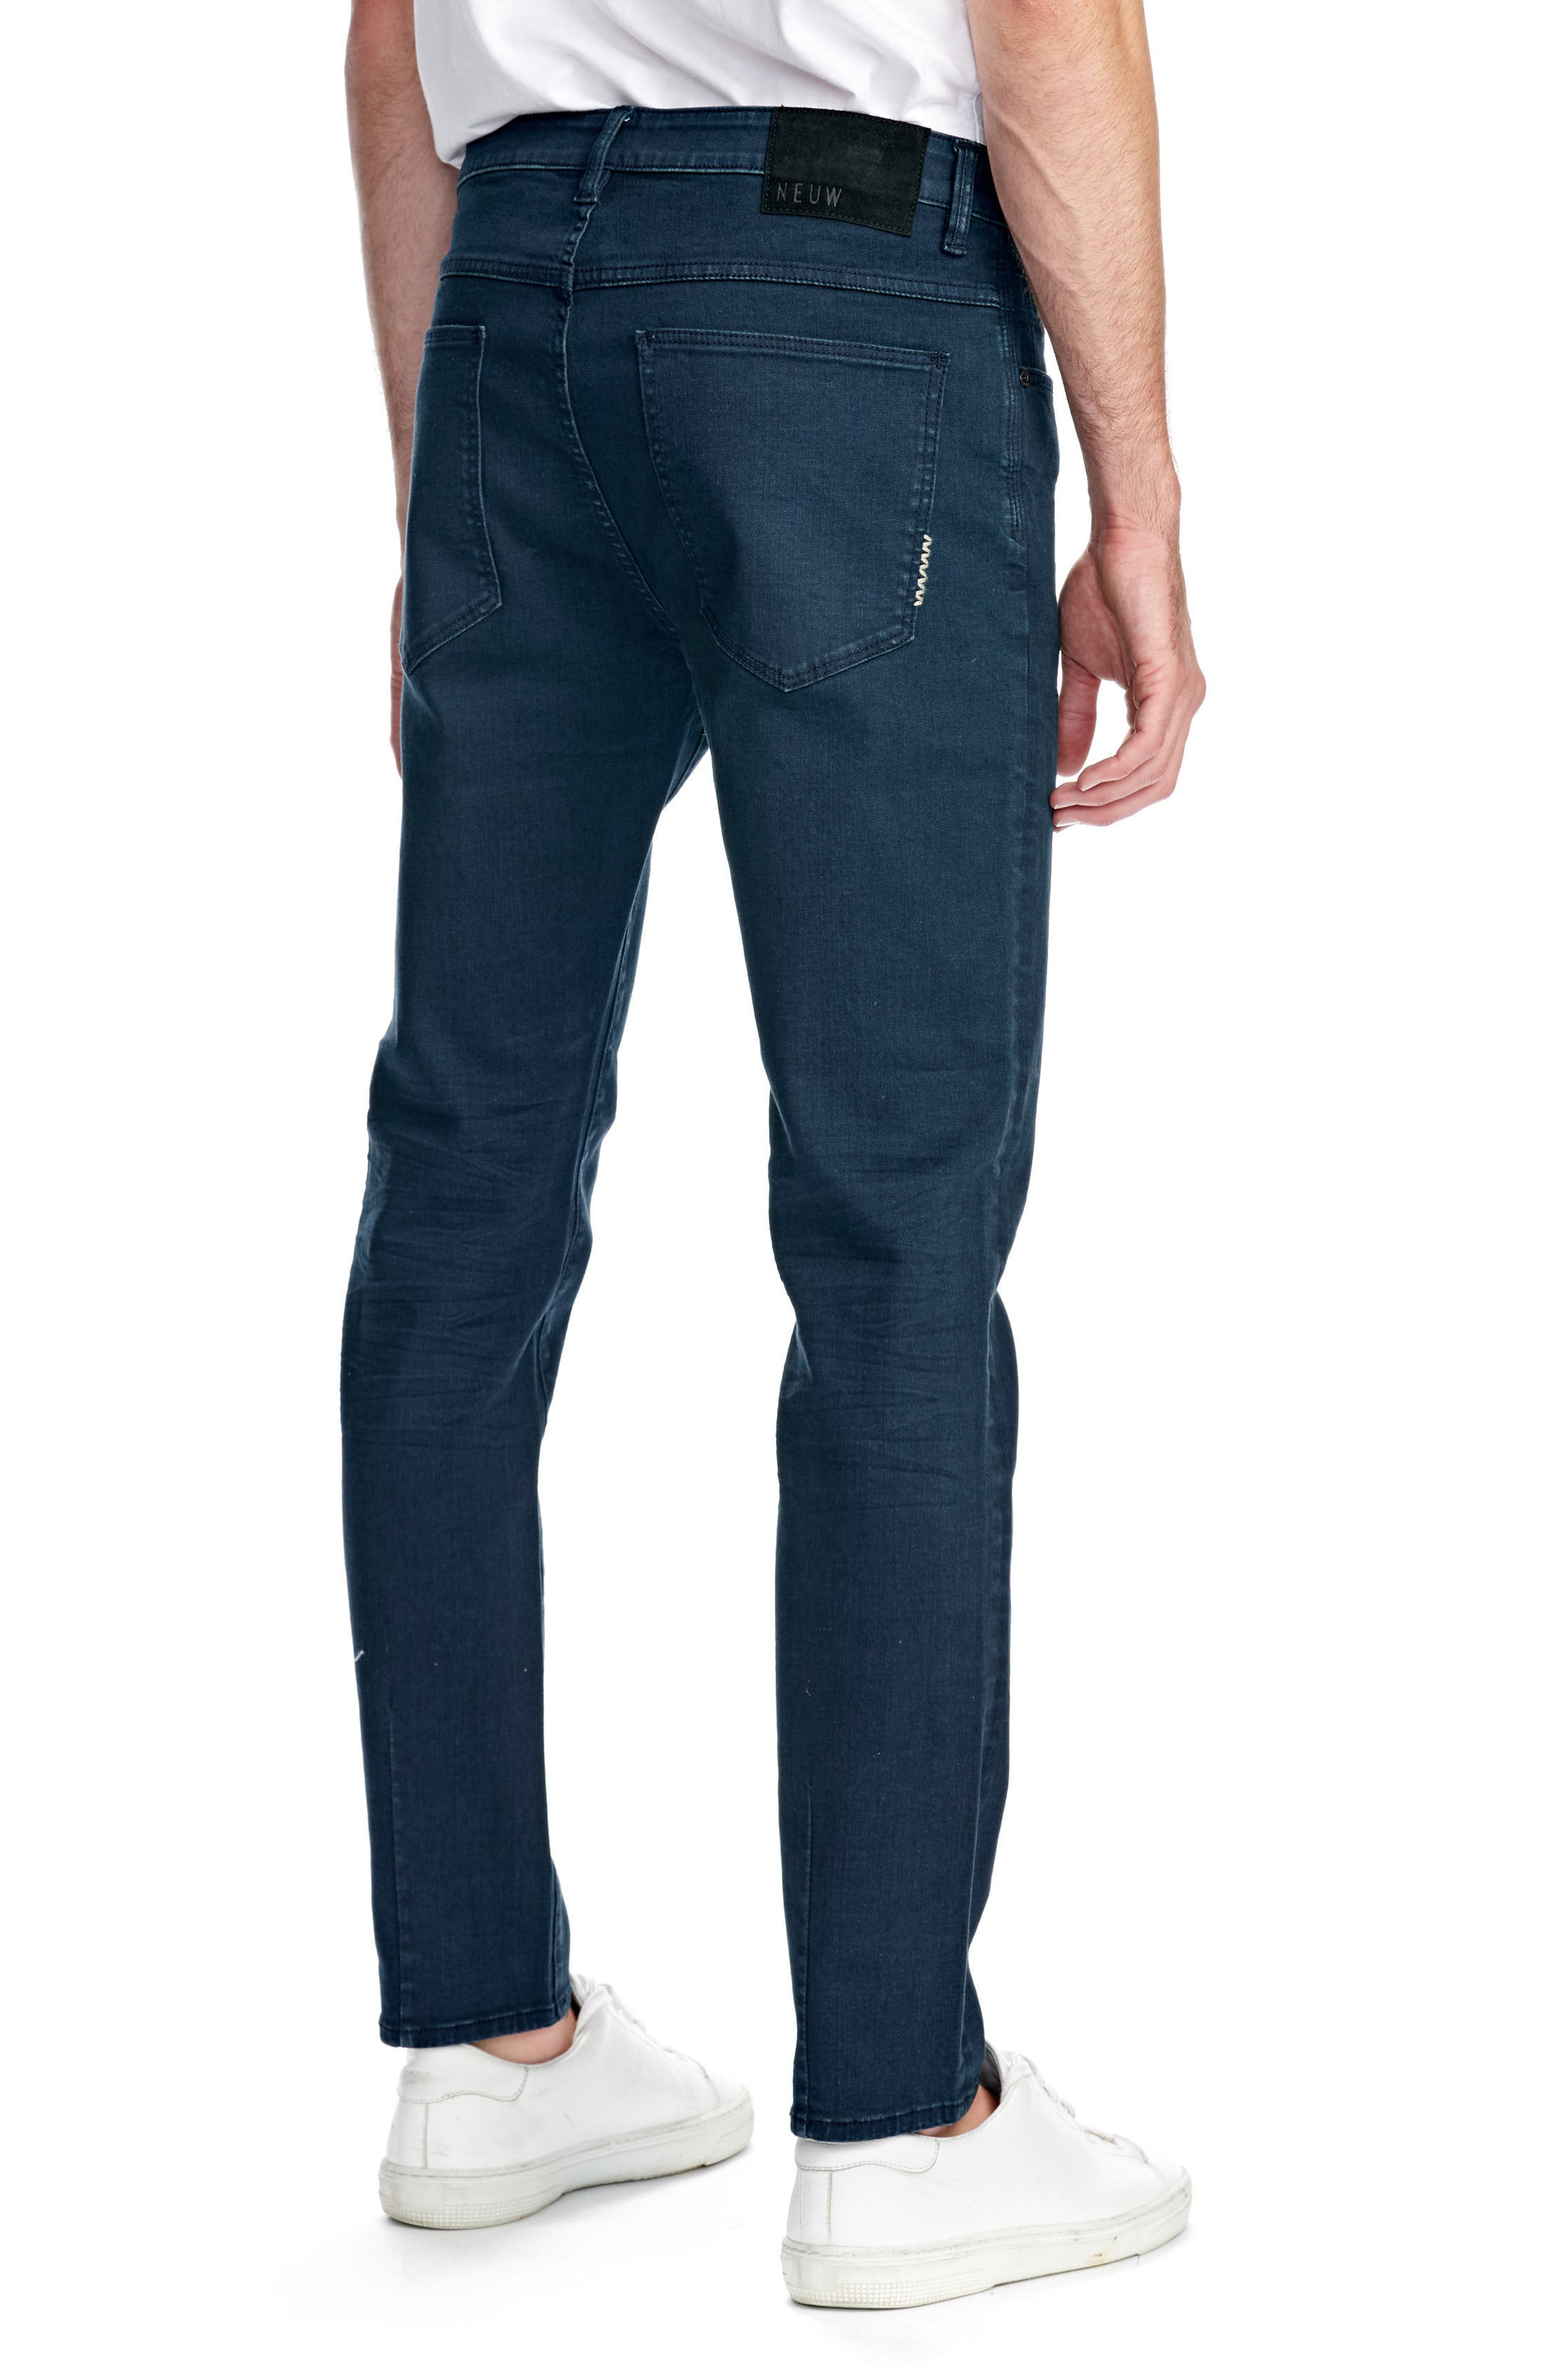 Ray Slim Fit Jeans,                             Alternate thumbnail 2, color,                             NORDIC BLUE